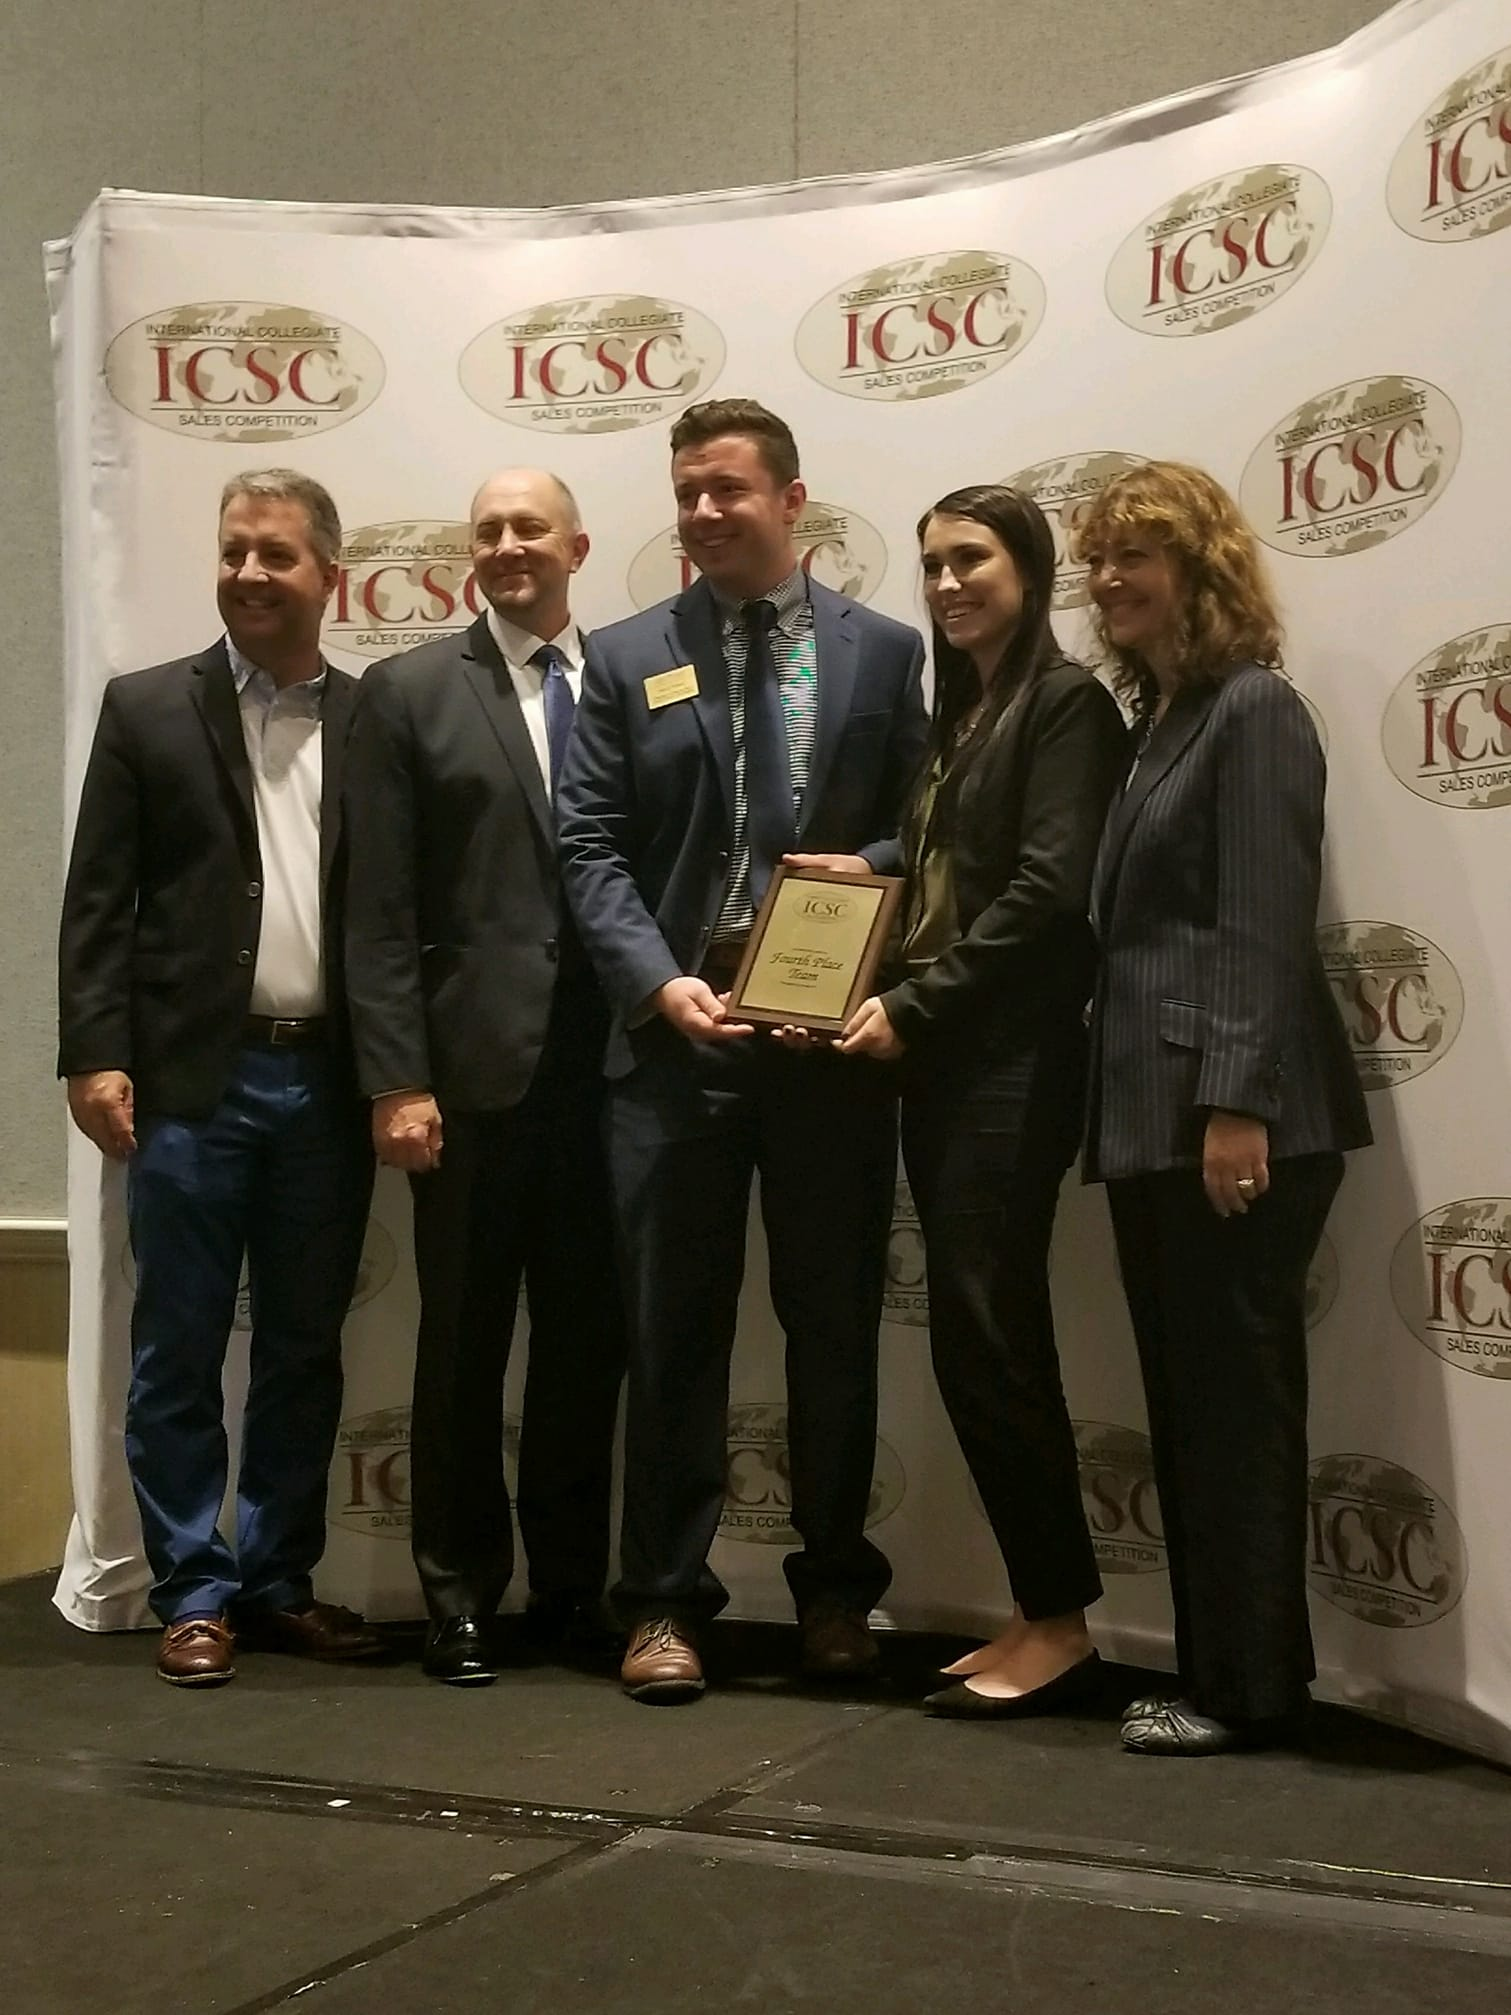 PSE Member Places 3rd at ICSC